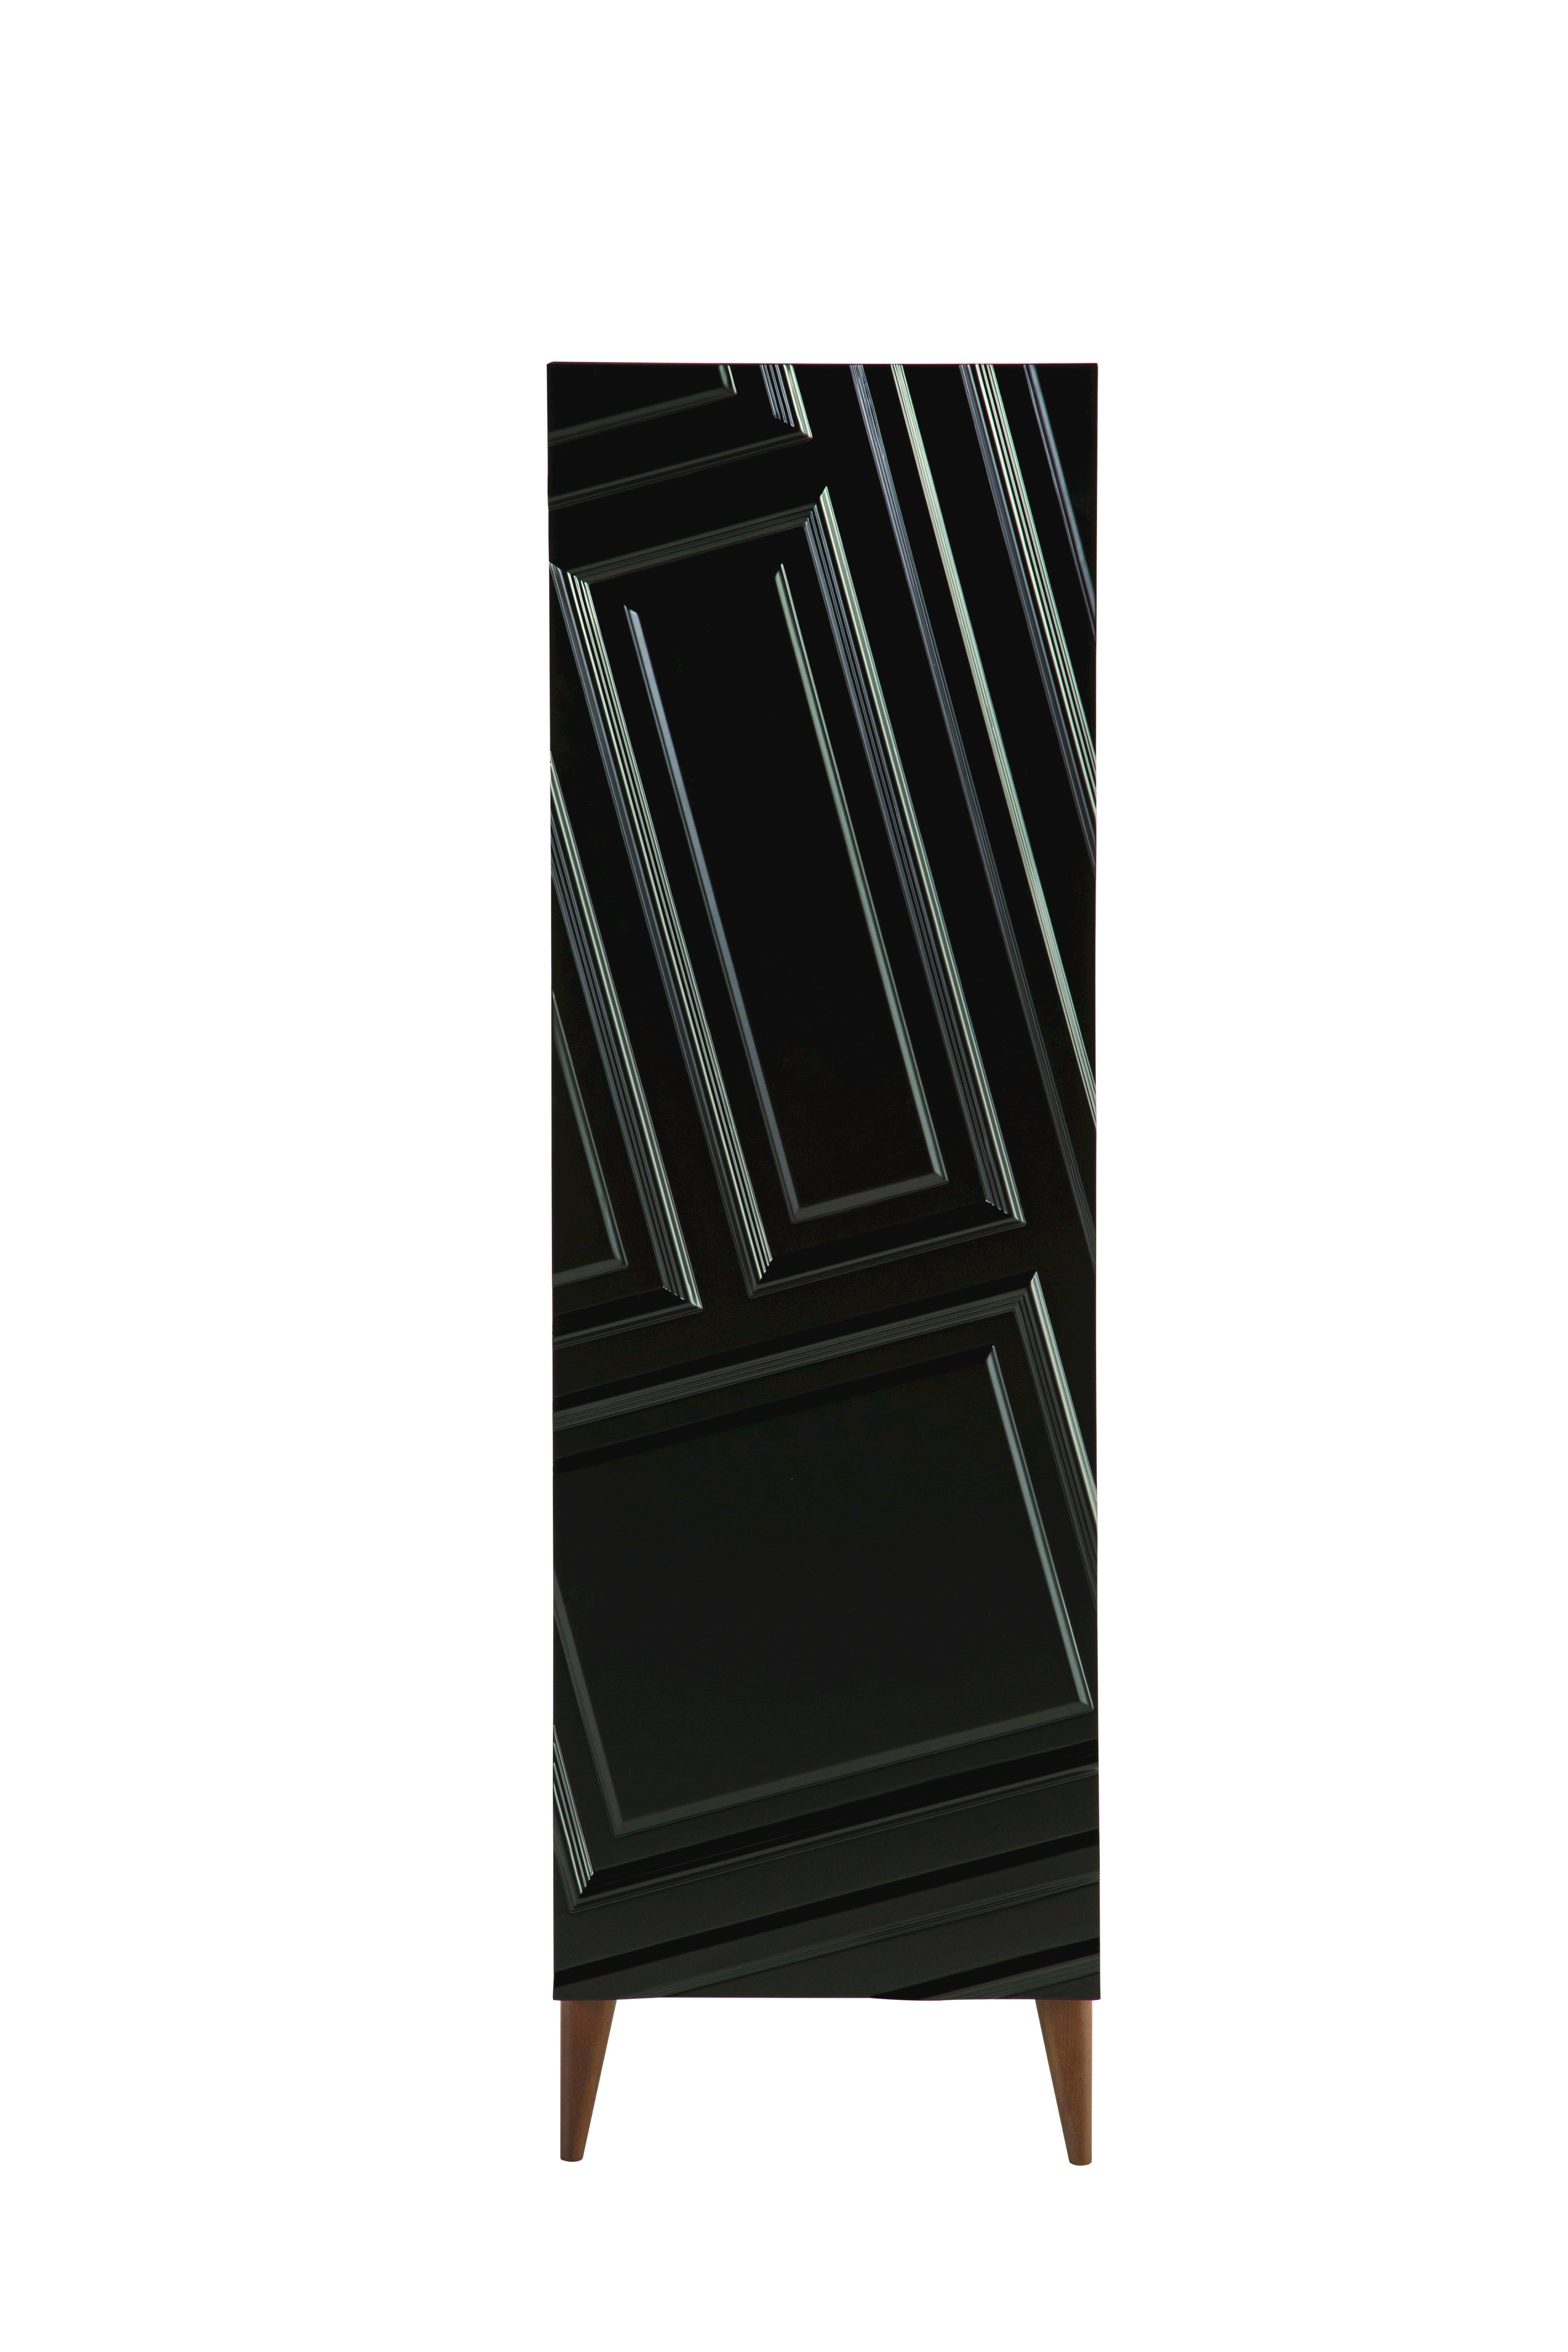 Astragale armoire avec 1 porte collection astragale by for Armoire roche bobois